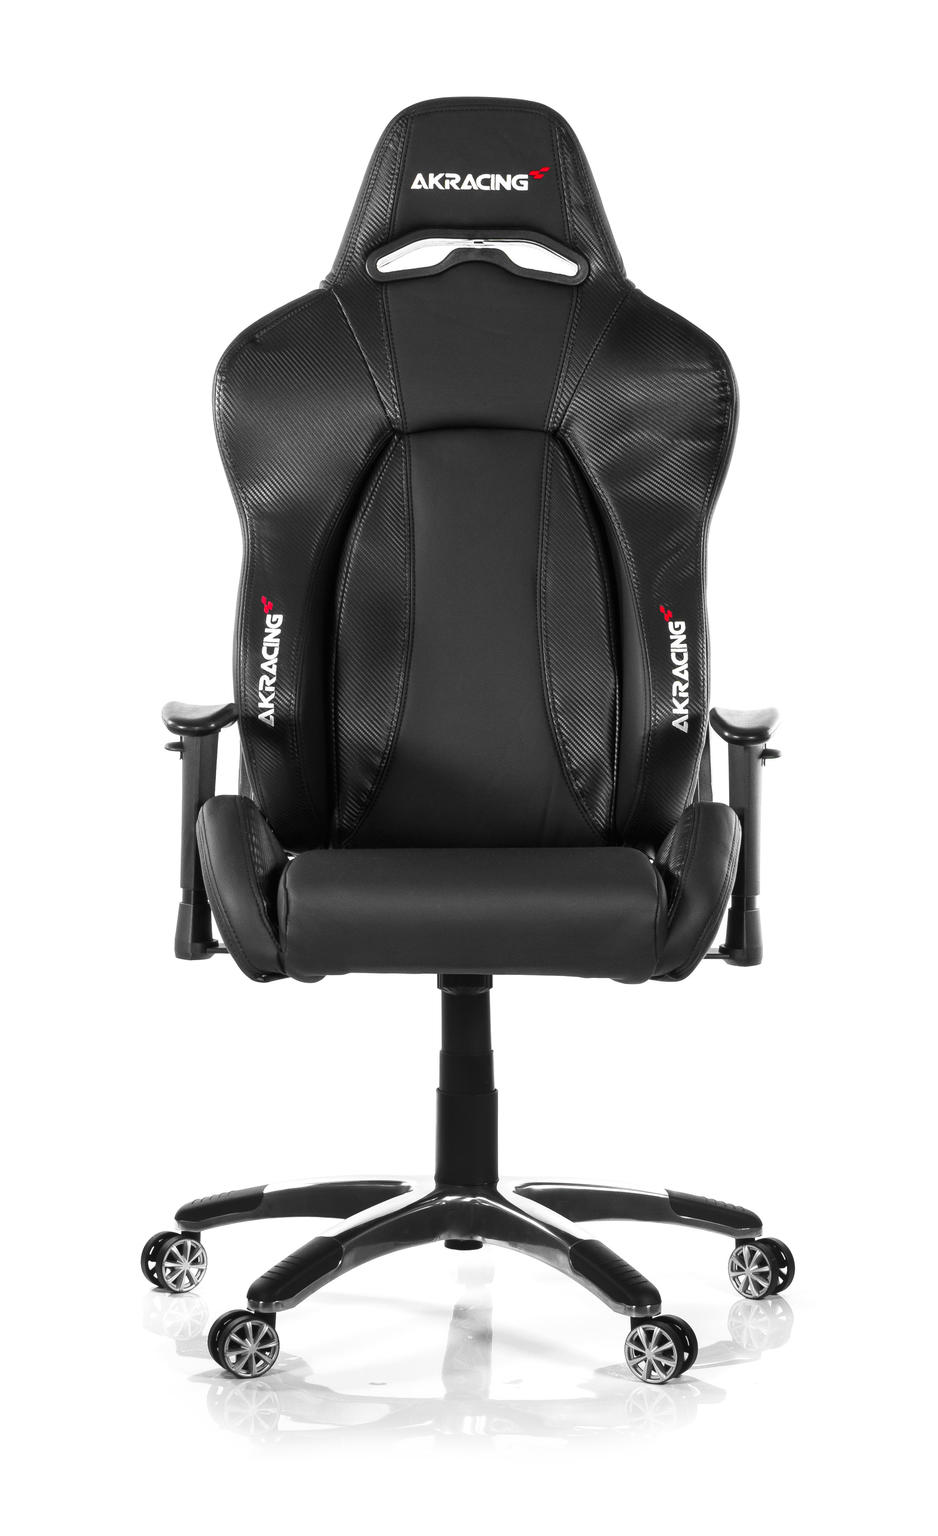 AKRacing Premium gamestoel Carbon zwart